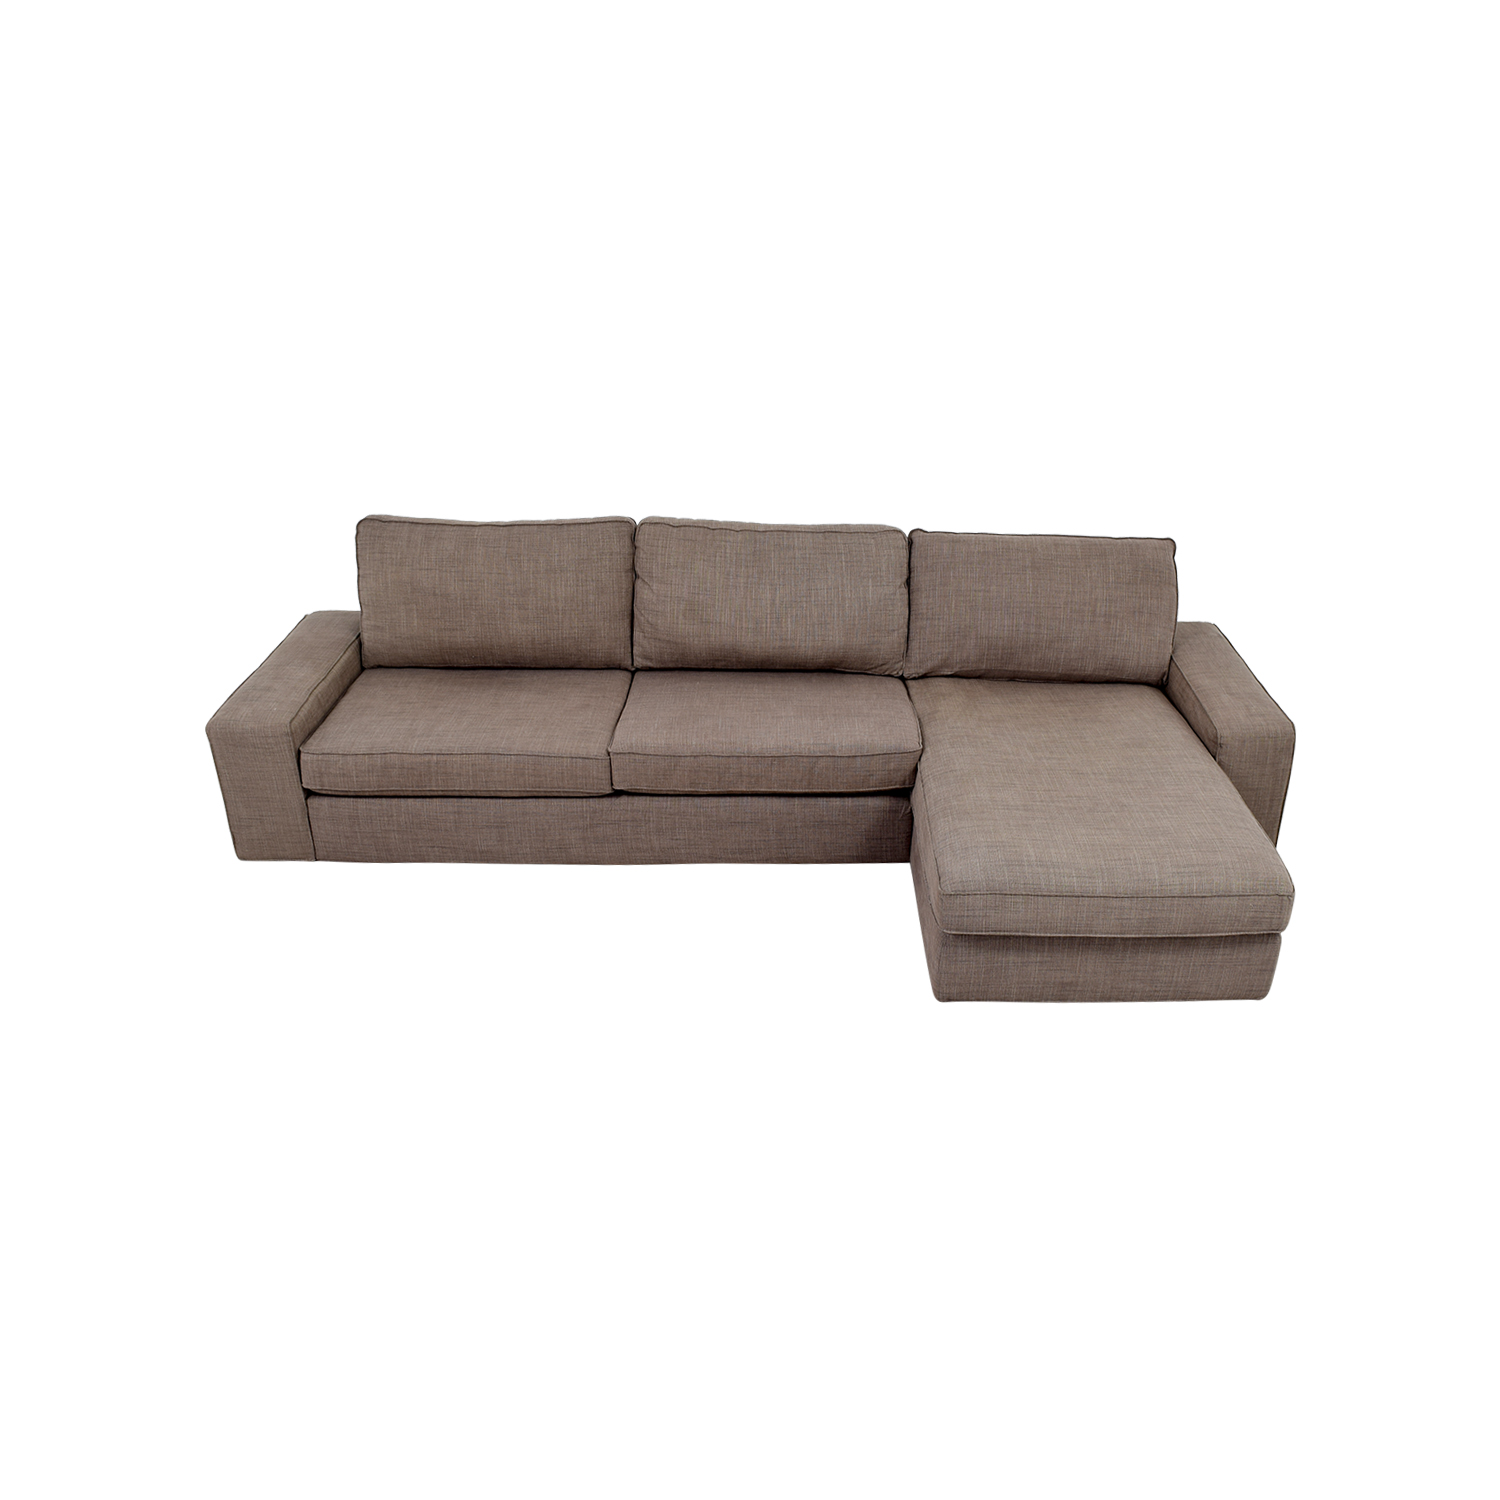 Charming IKEA IKEA Kivik Grey Sectional Dimensions